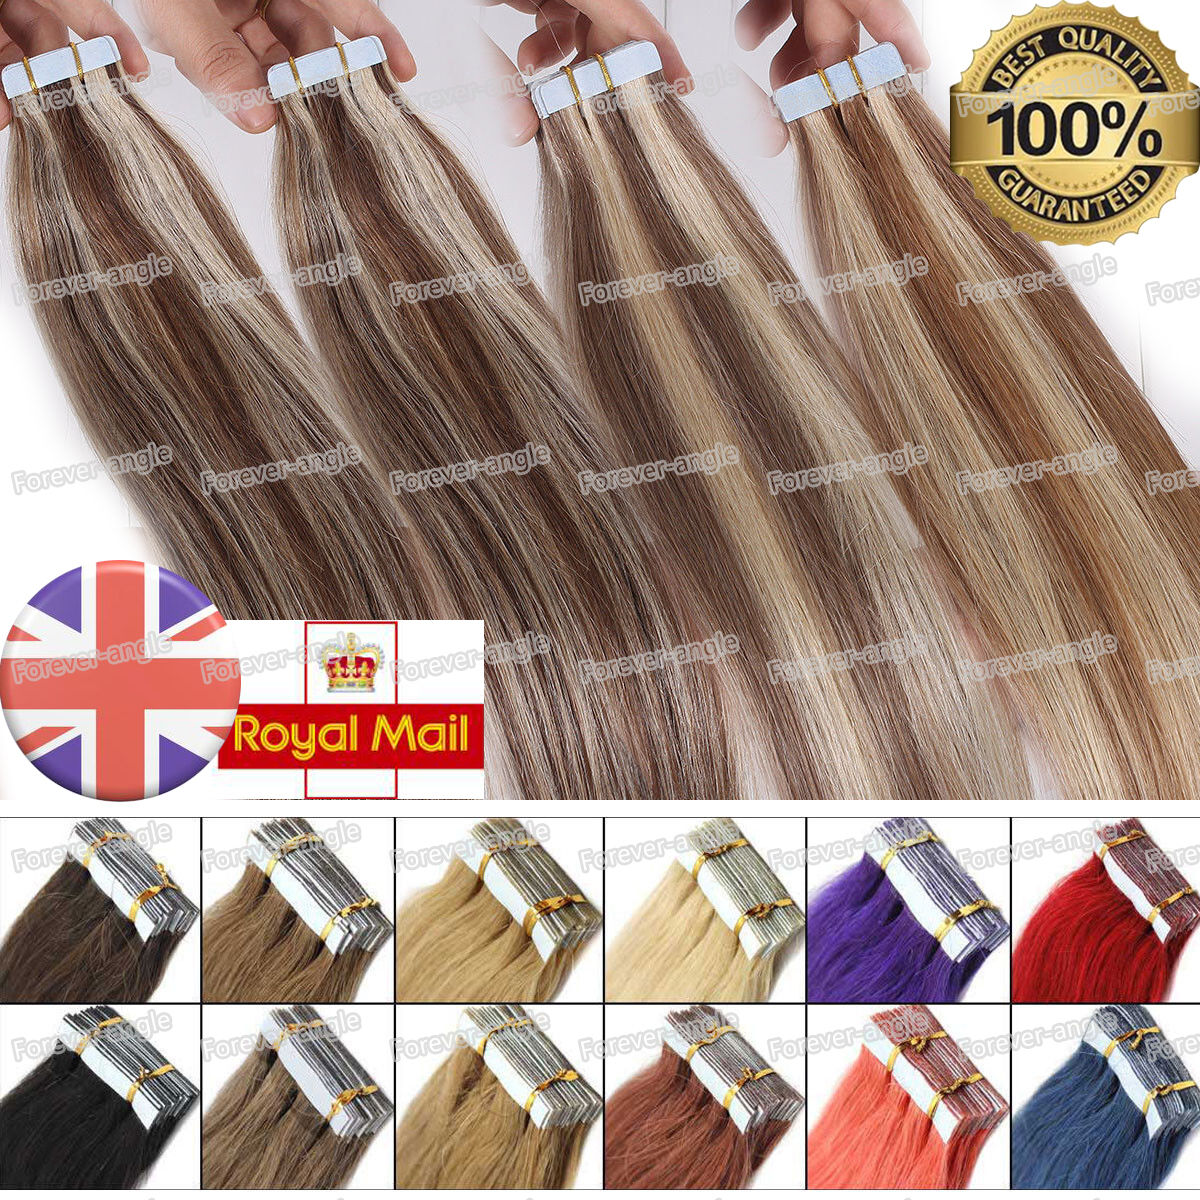 Remyhuman hair extensions color ring chart color wheel 43 various all of our human hair extensions are made of 100 remy human hair 2 color ringcolor chart hair sample for human hair extensions color sample chart geenschuldenfo Choice Image